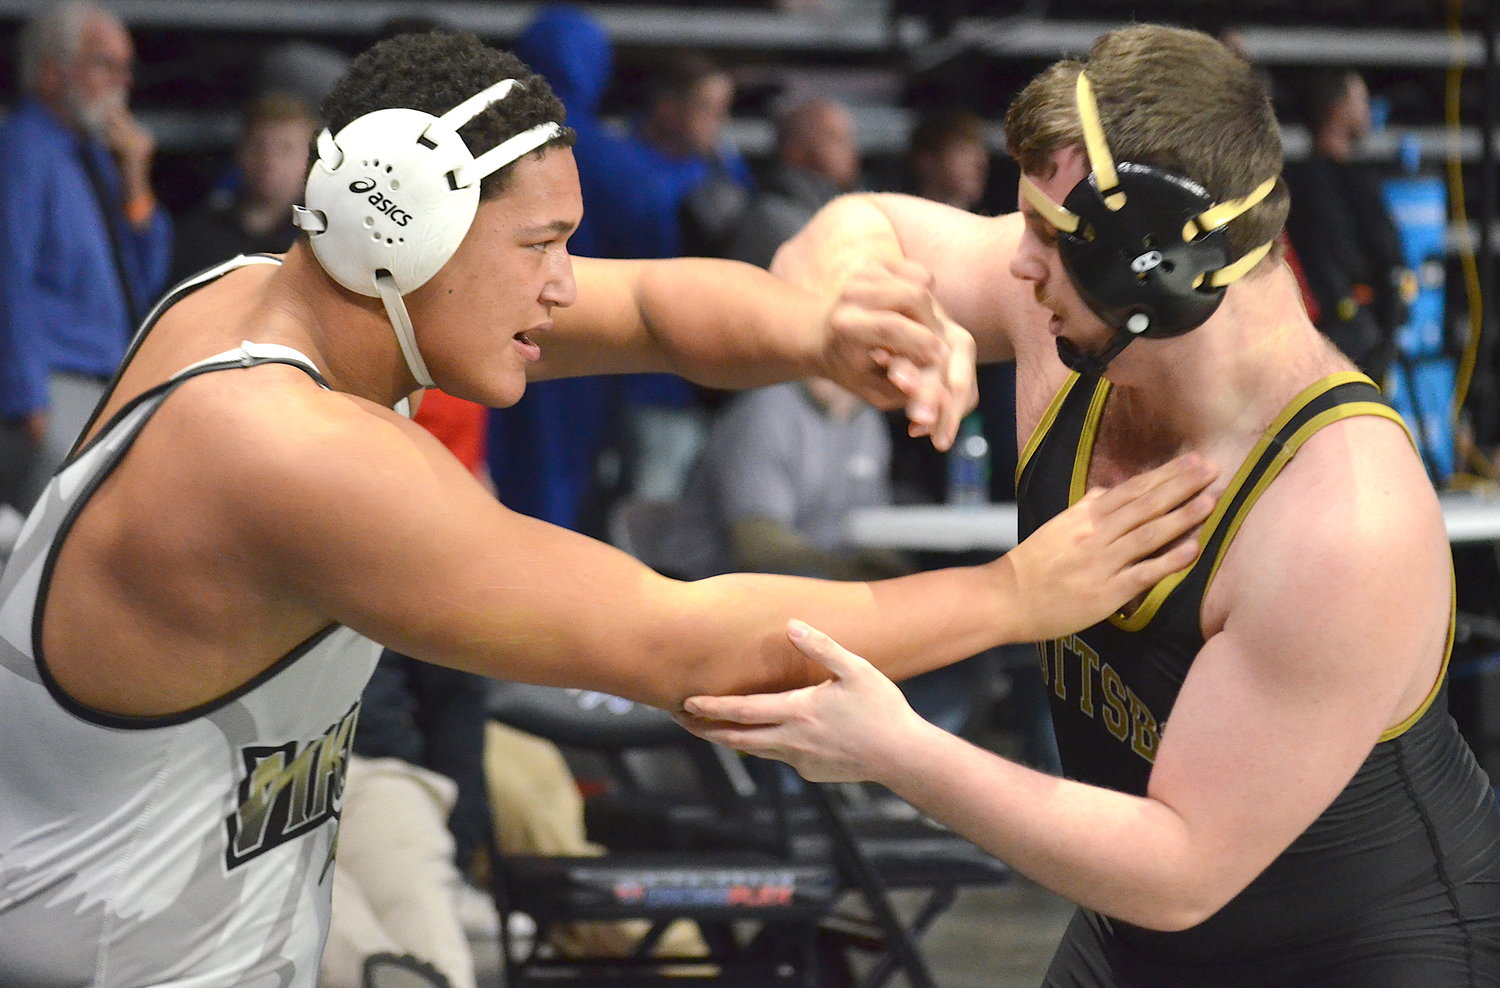 Jasper's Brodie Vinson, left, battles a Scottsboro opponent during the North Super Section Tournament on Saturday in Birmingham. Vinson will be one of nine Jasper wrestlers competing in this week's State Wrestling Tournament at the Von Braun Center in Huntsville.